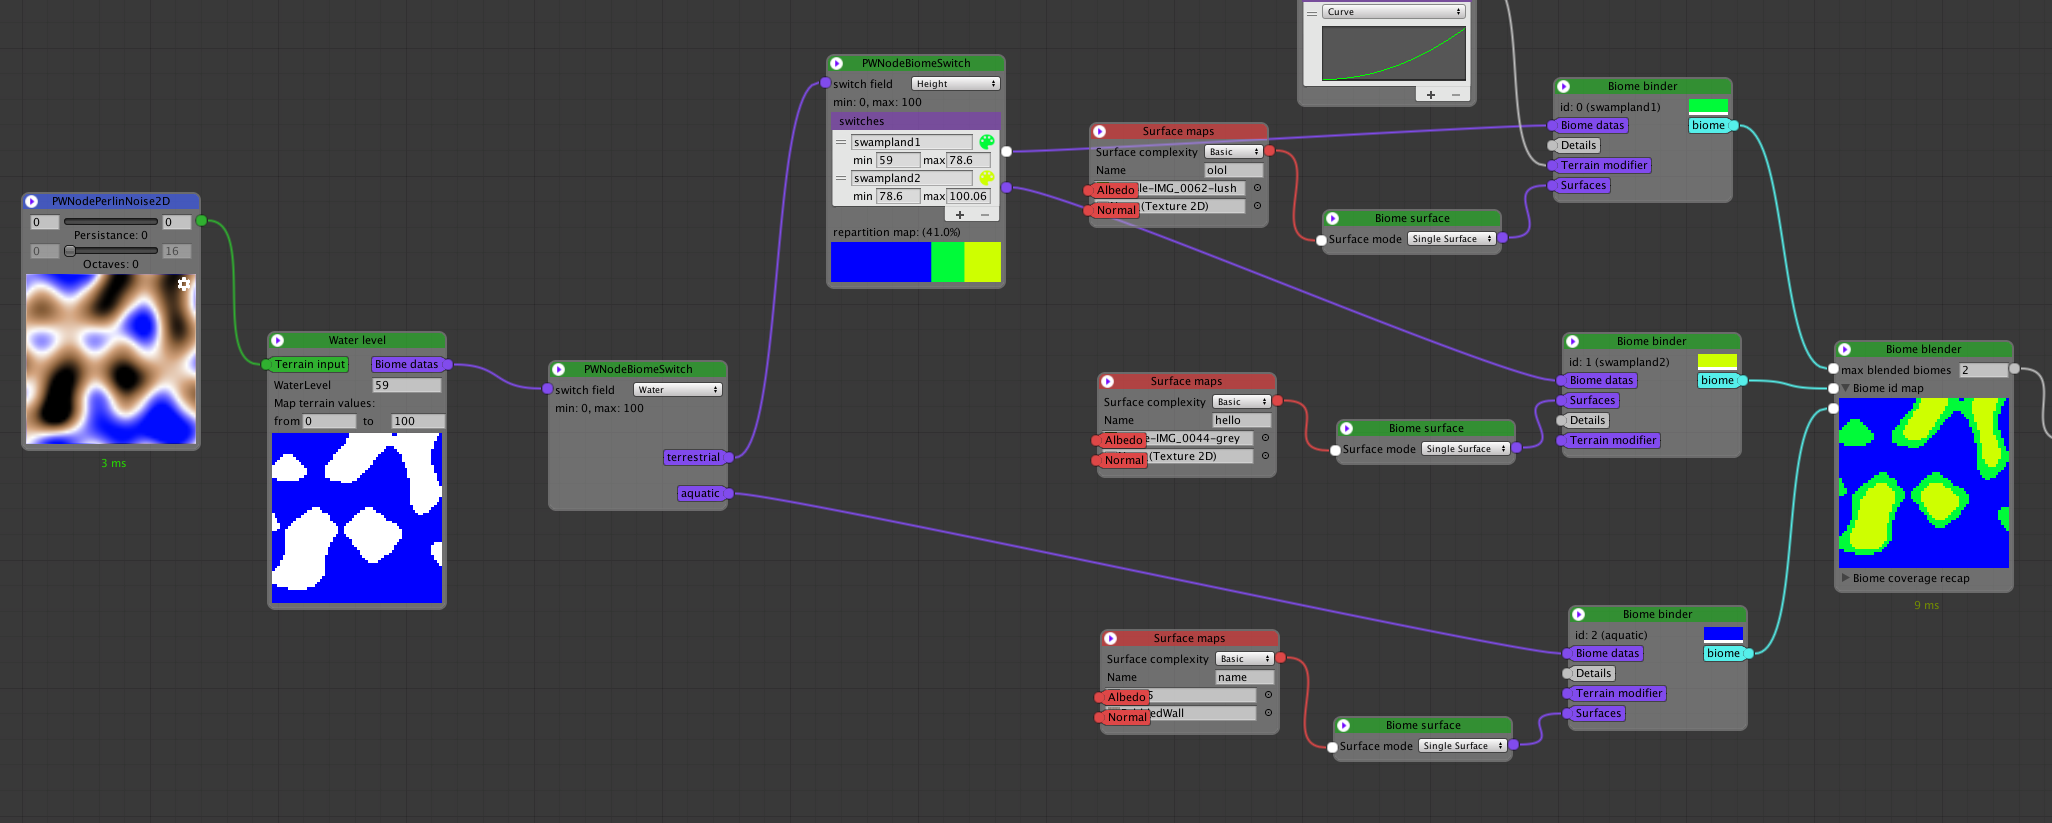 Serialize a graph or any complex data structure in Unity